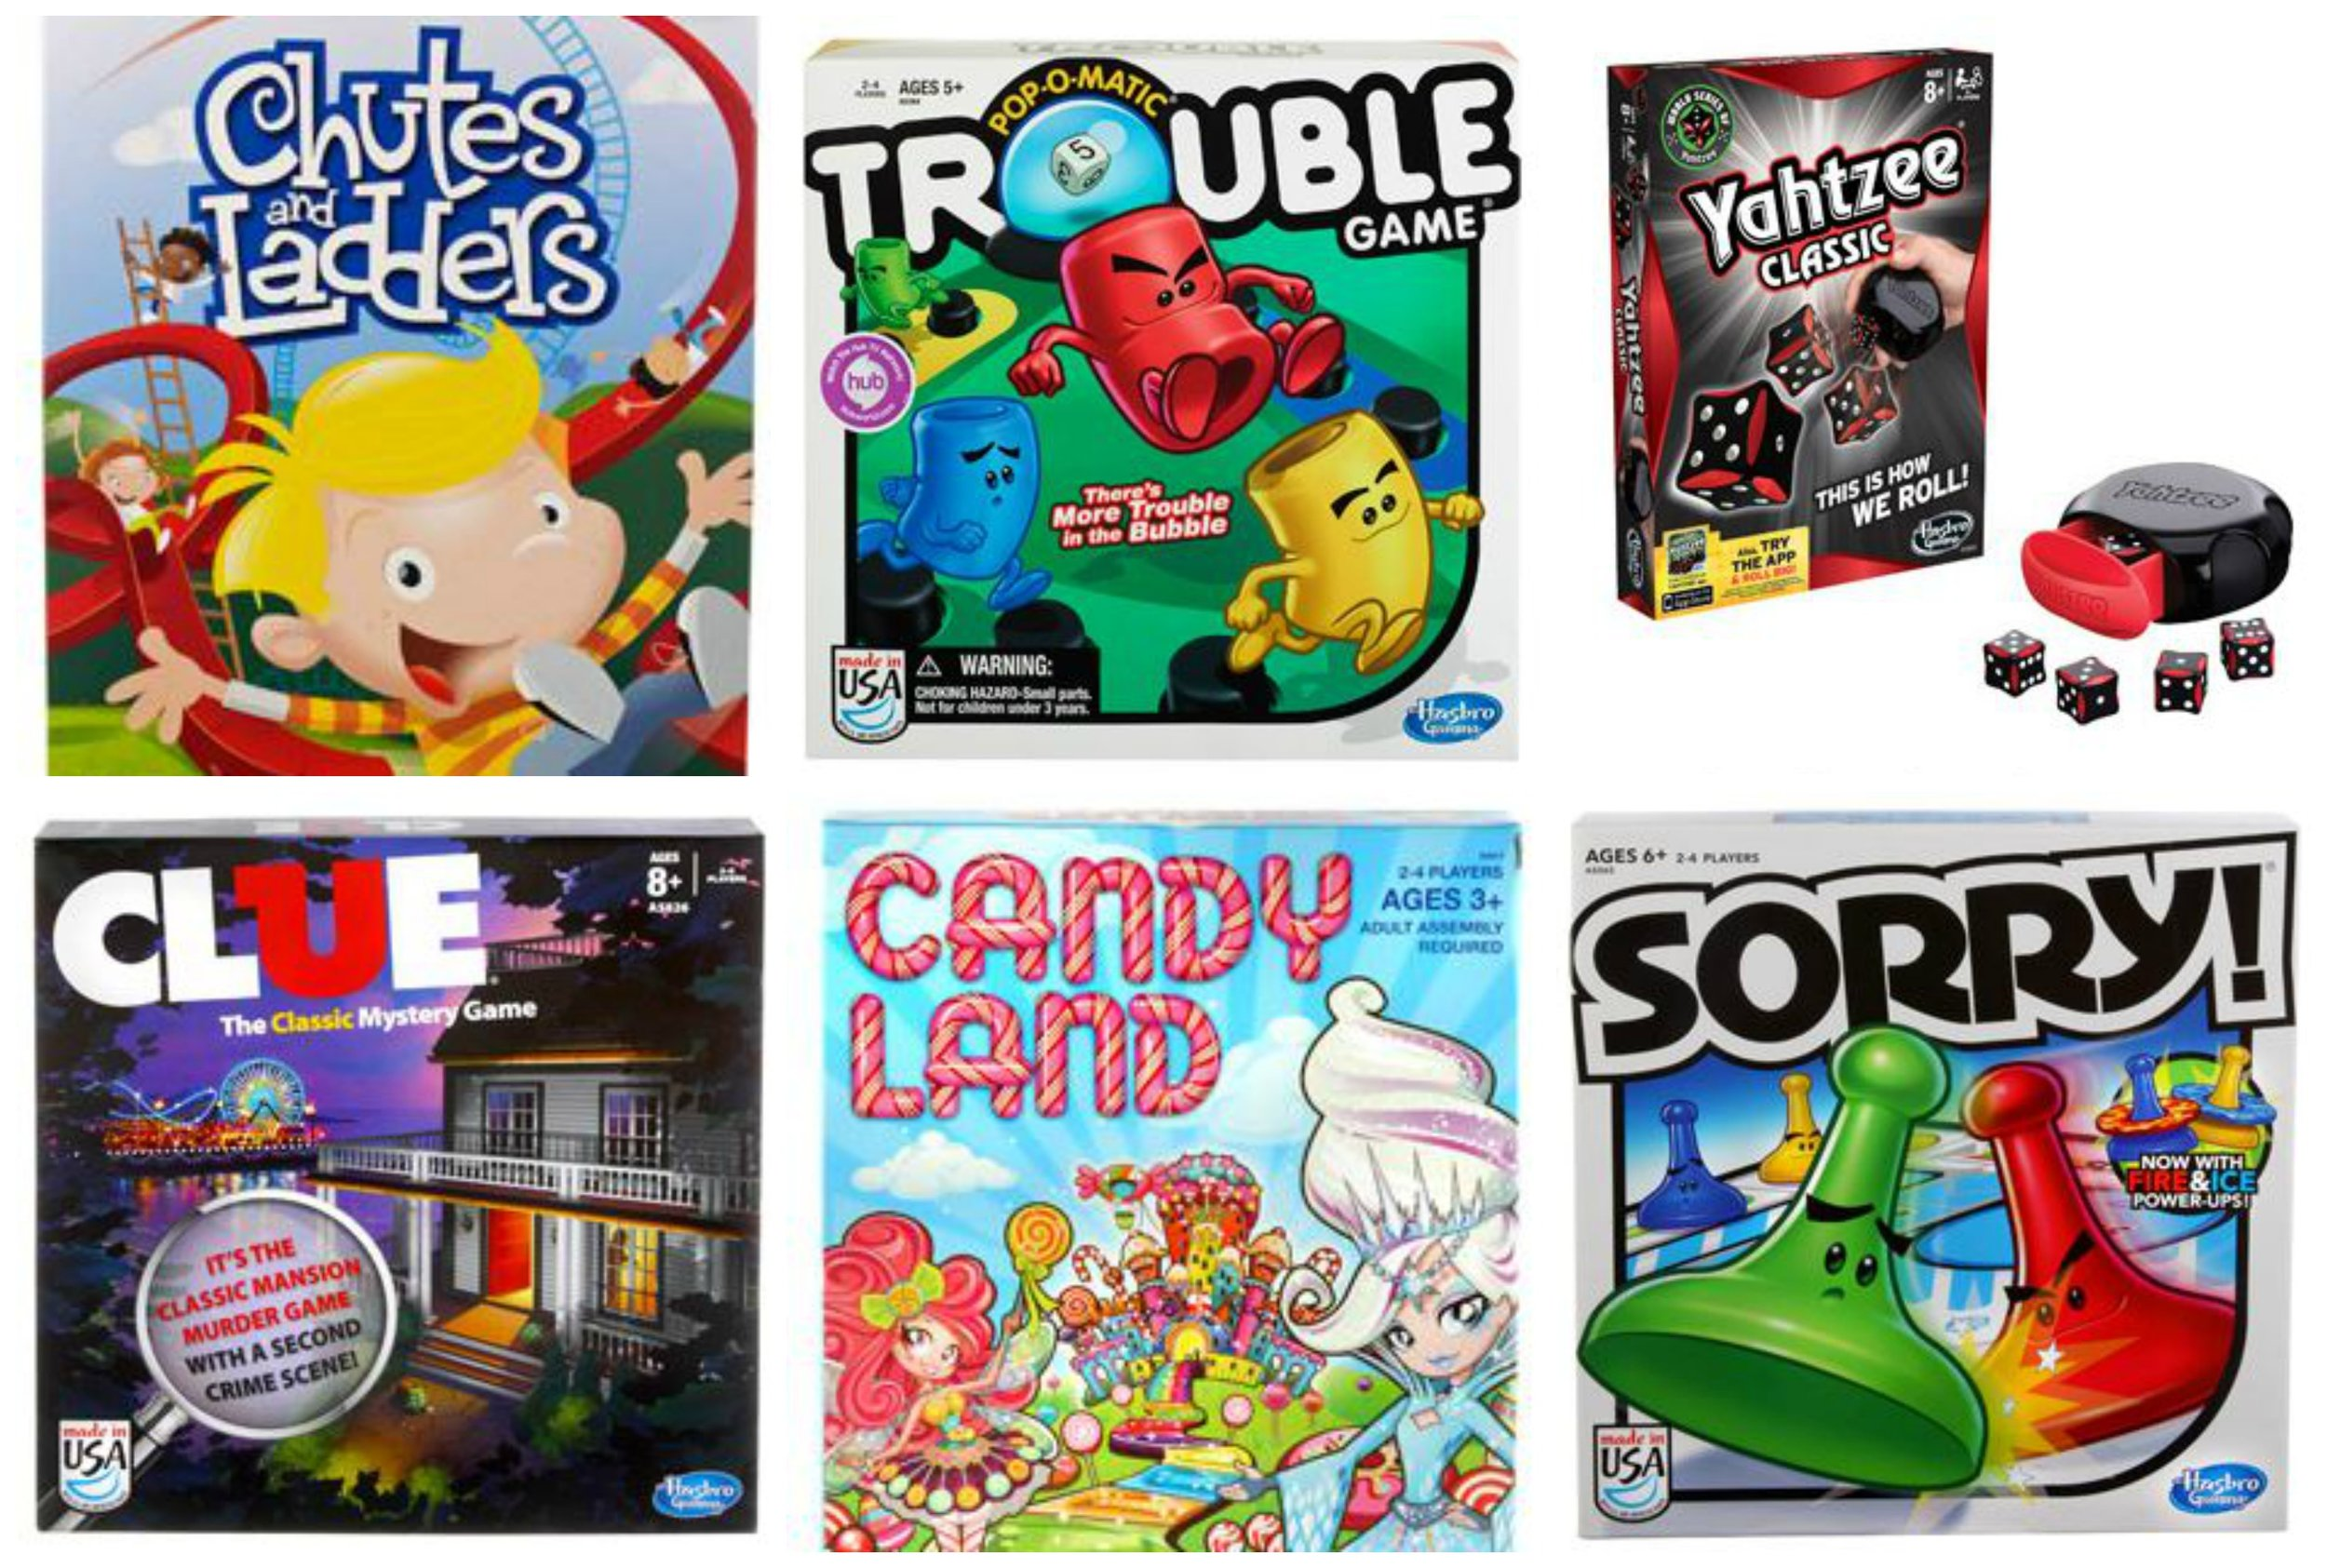 Fun Time! - Classic board games and interaction with other children allow your children to practice